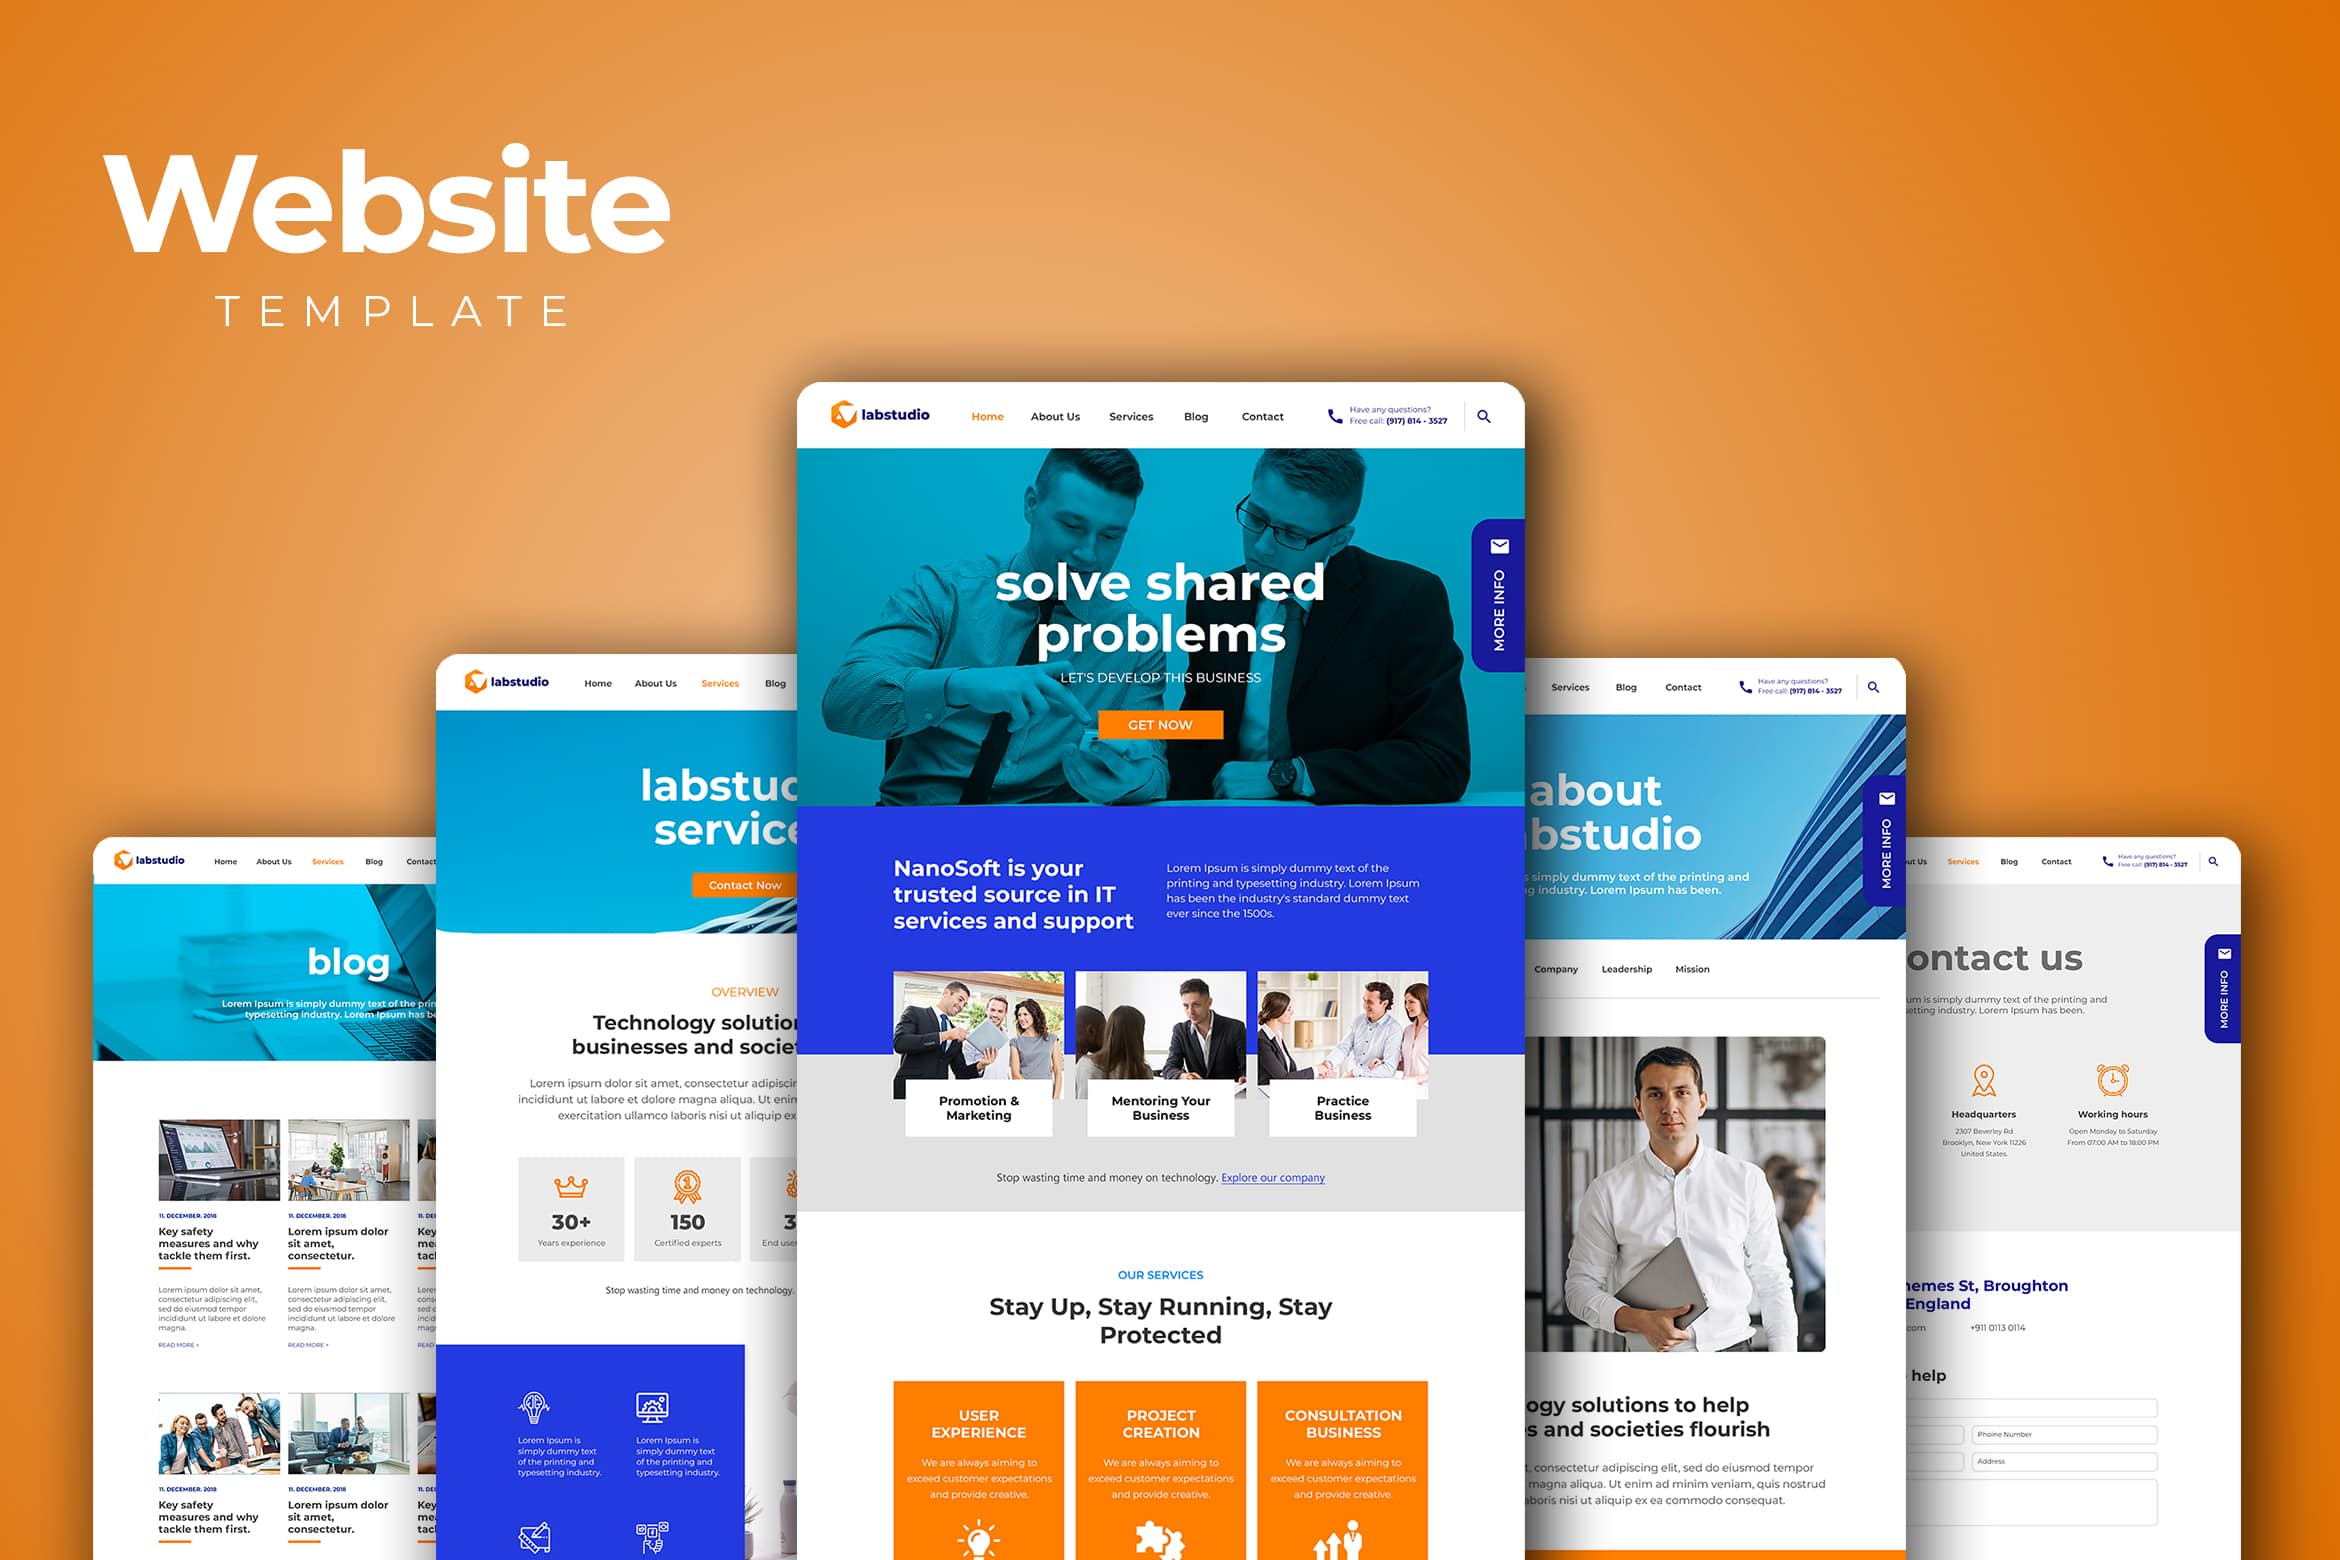 Website Template - Information Technology Services